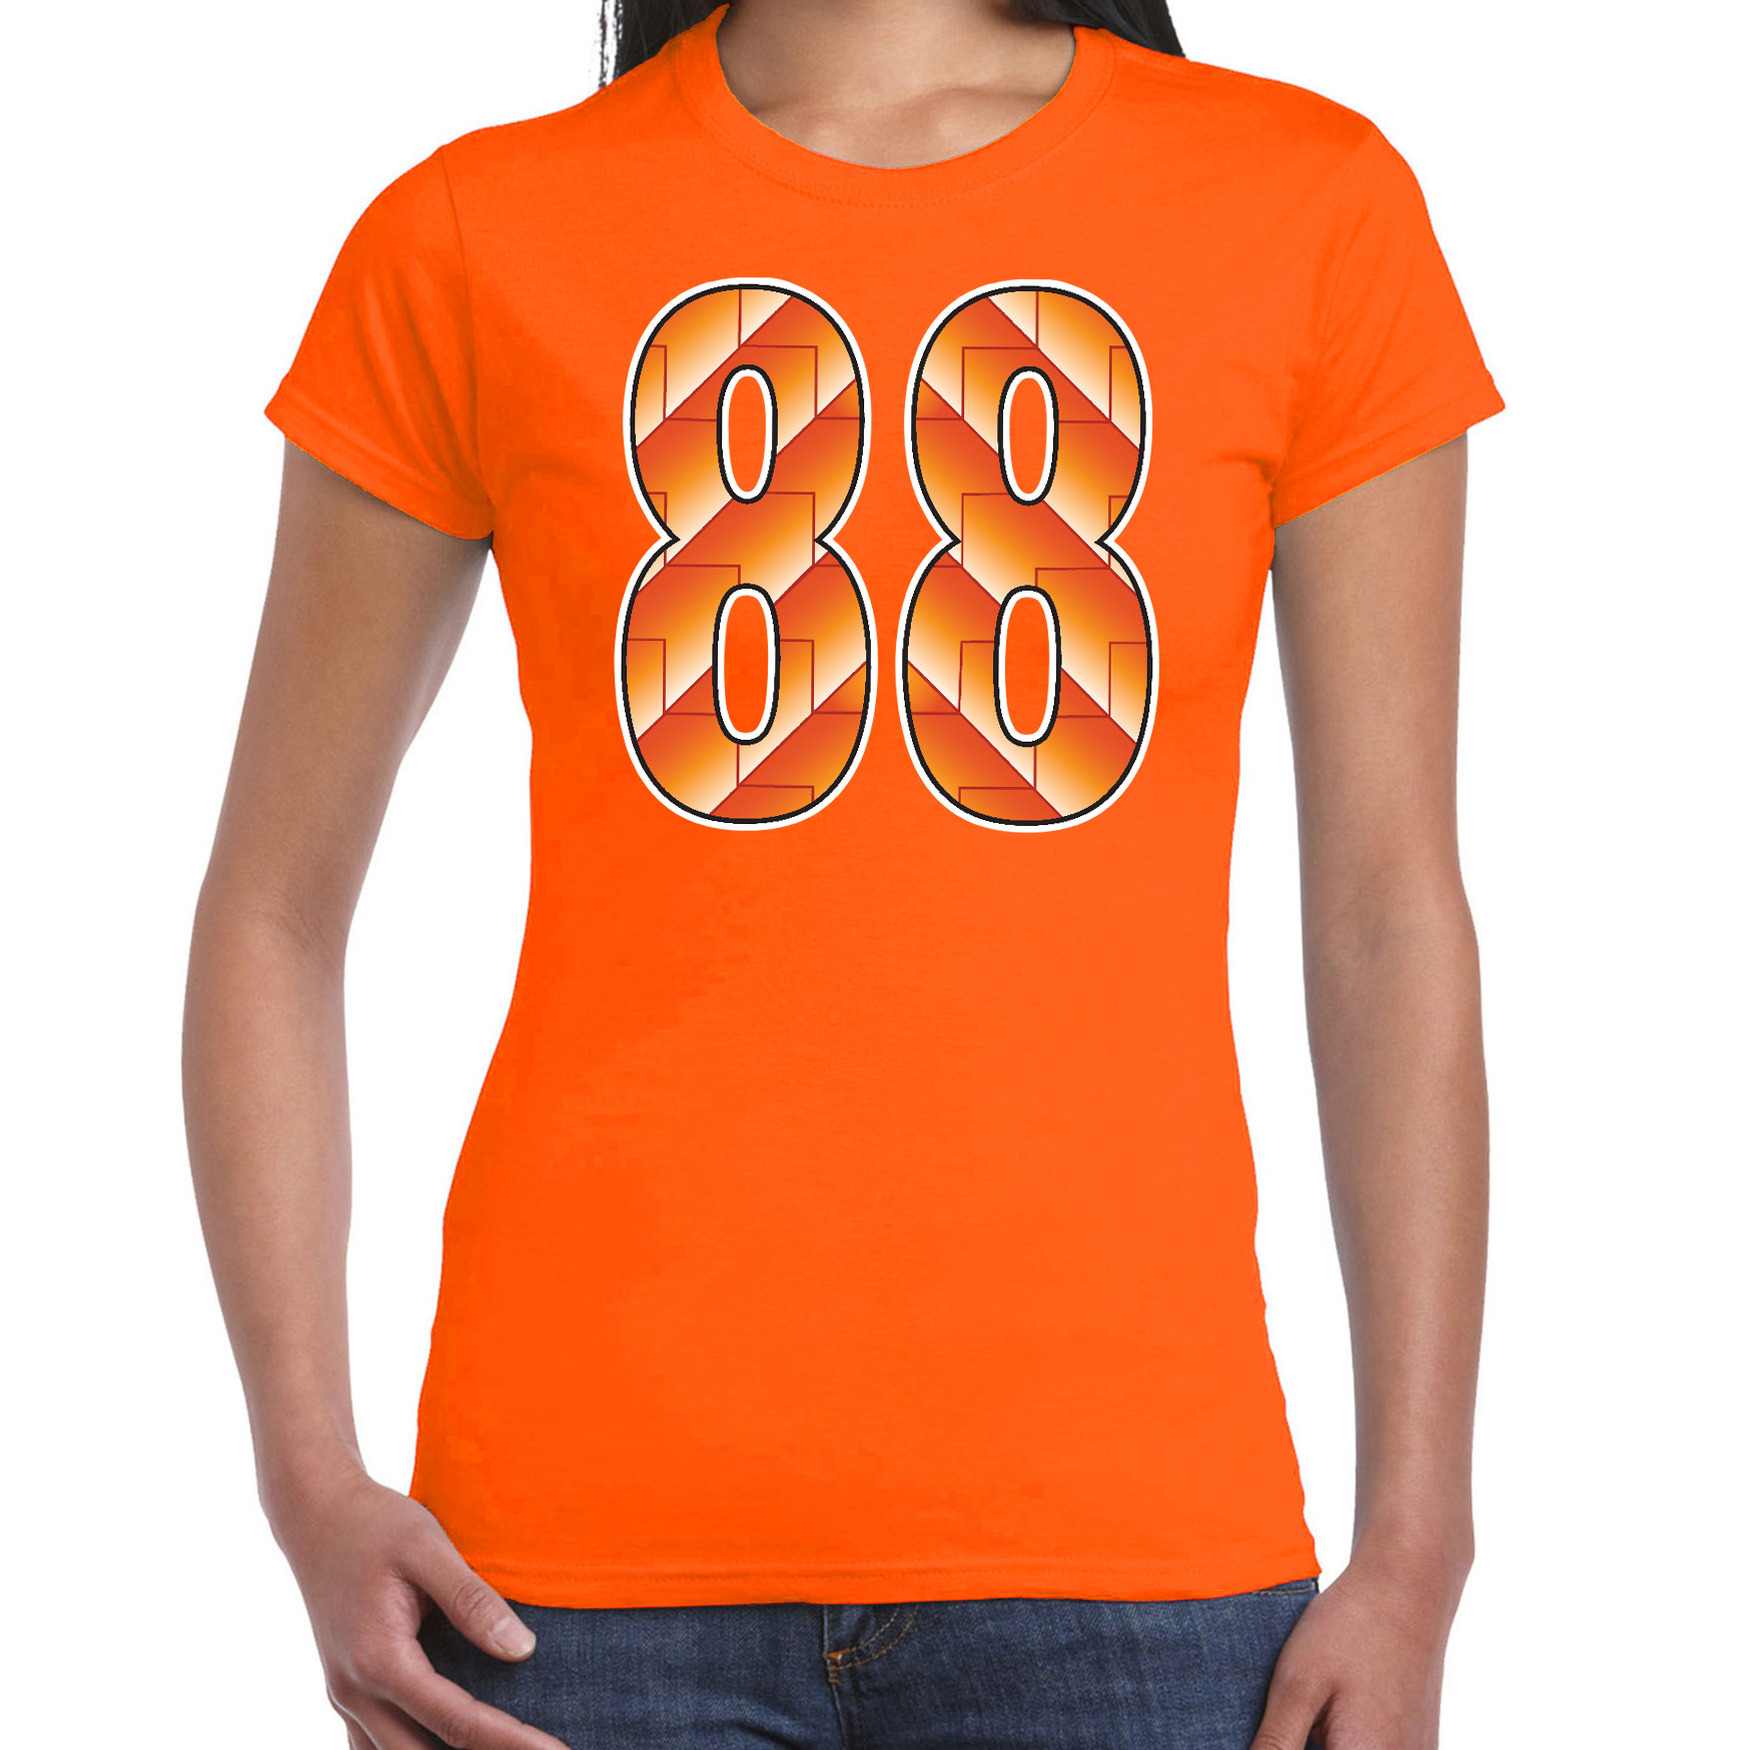 88 Holland supporter t-shirt oranje voor dames